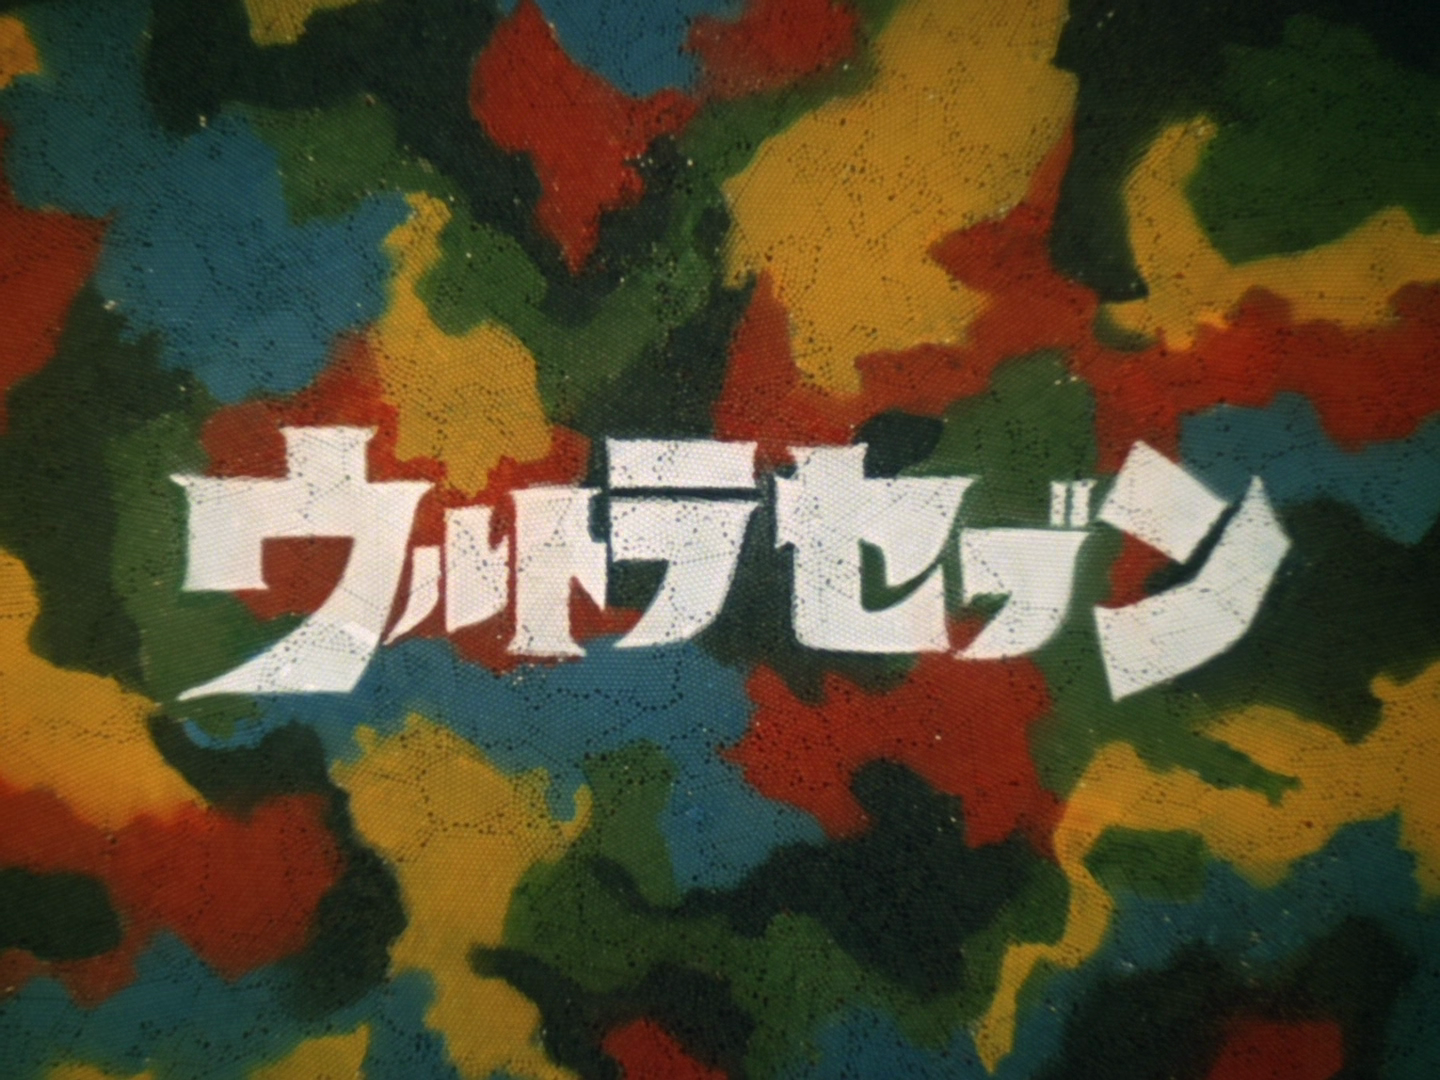 File:Ultrasevenseries.png